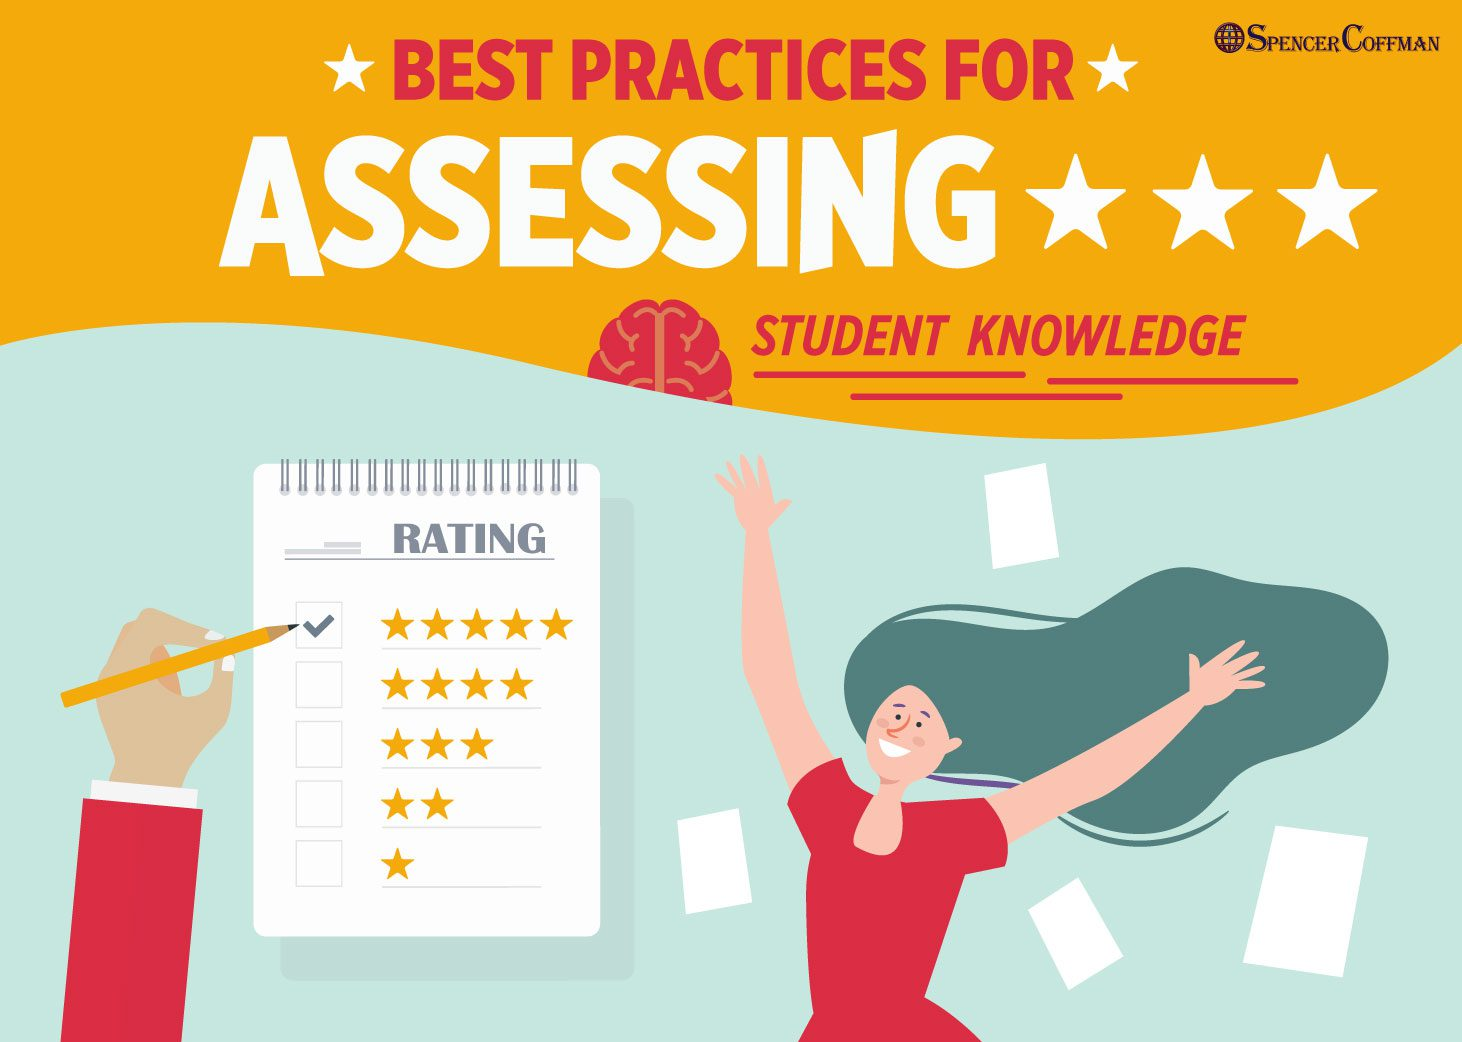 Best Practices For Assessing Student Knowledge - Spencer Coffman